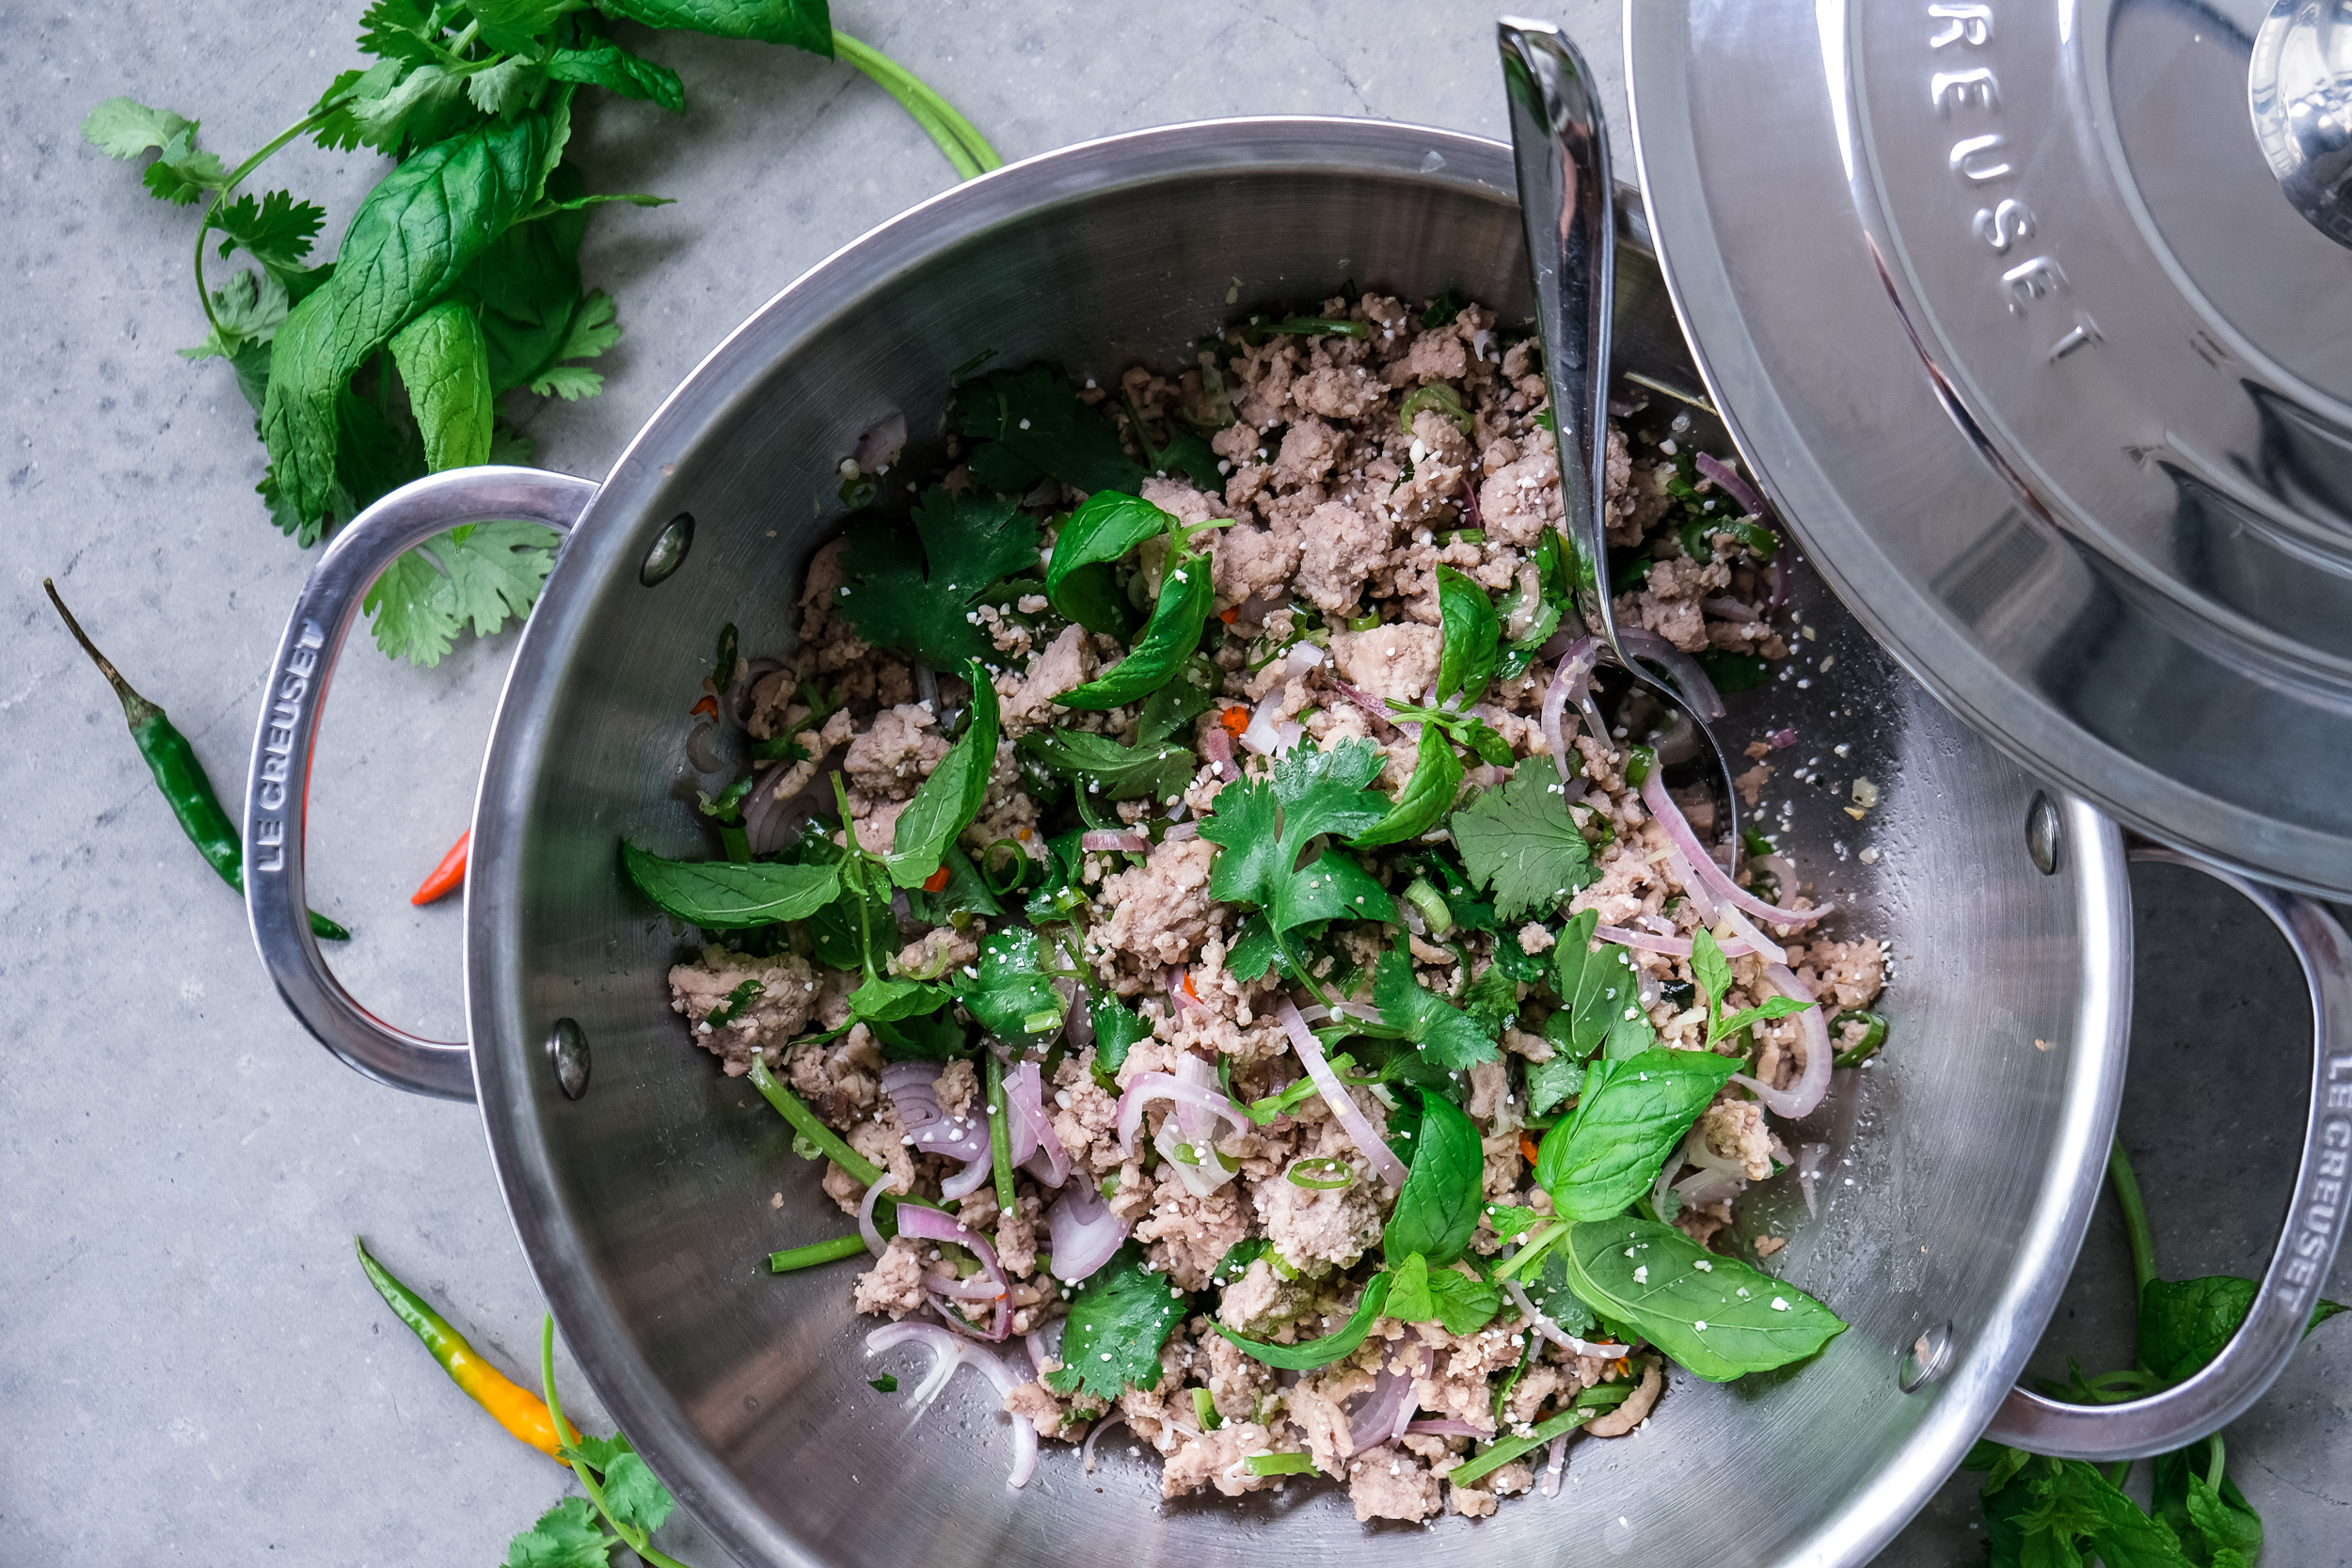 Larb made in the Le Creuset Canada Stainless Steel Risotto Pot